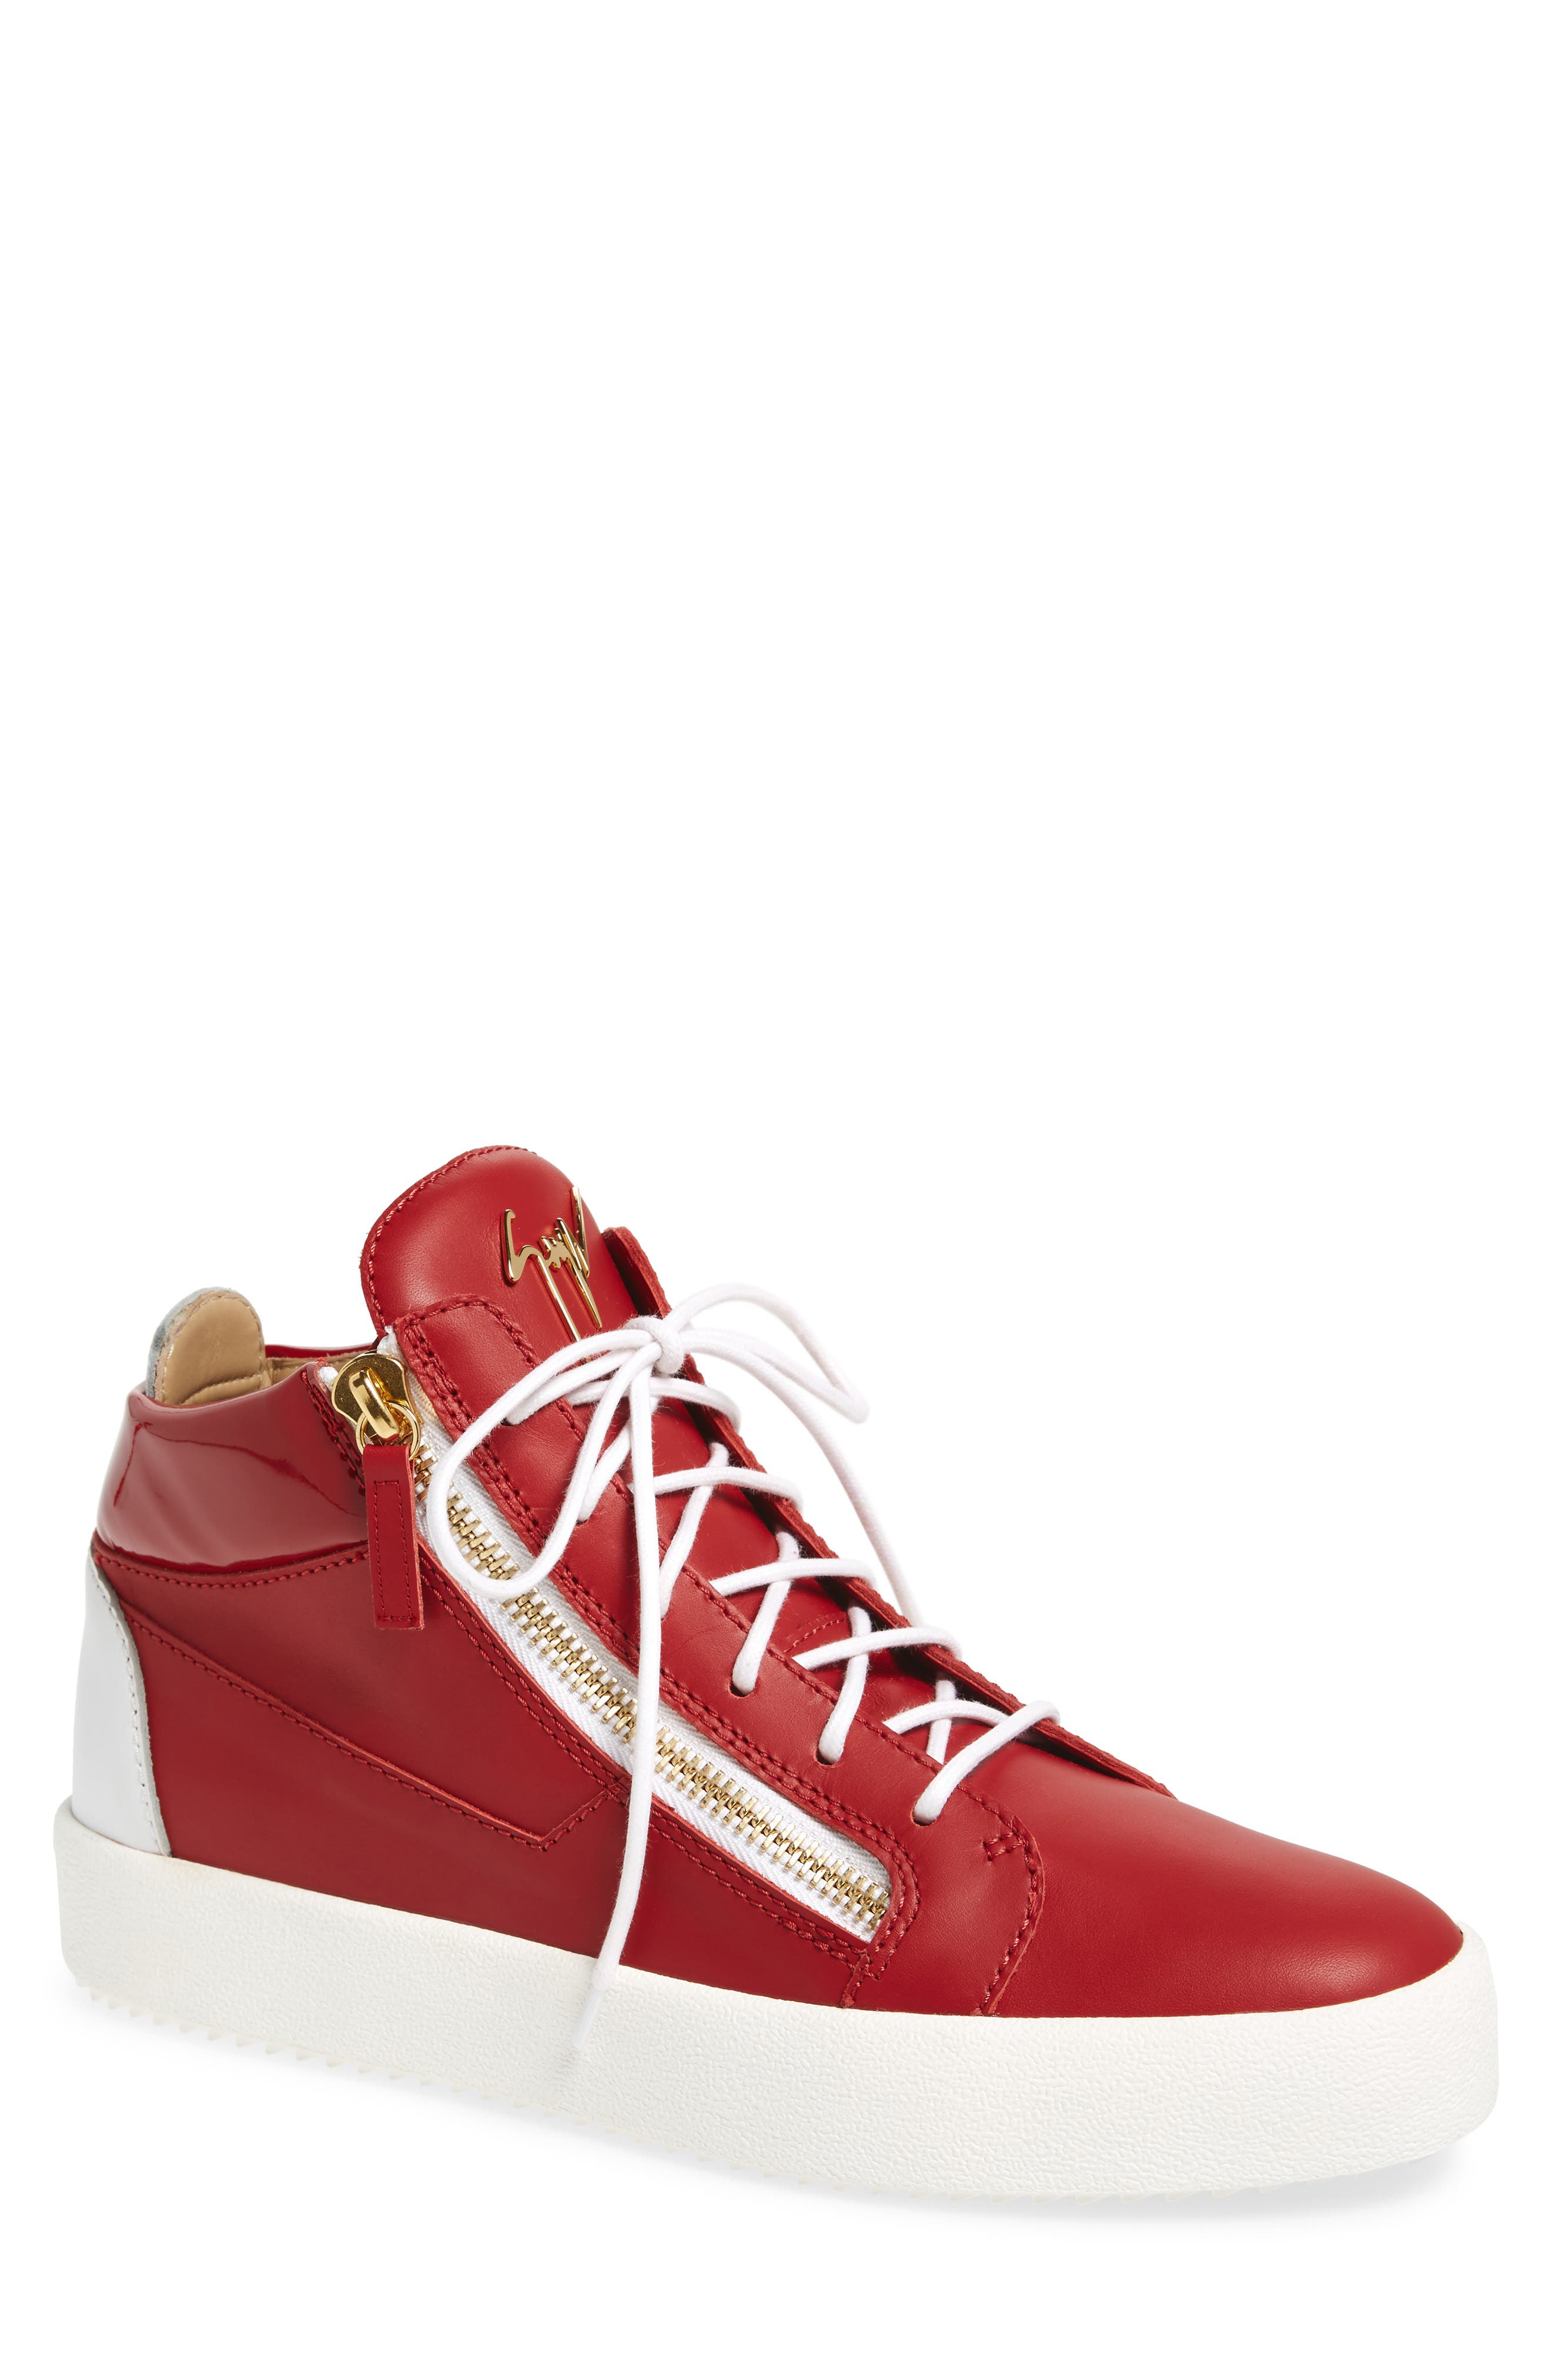 Double Zipper Mid Top Sneaker,                         Main,                         color, Red W/ White Leather